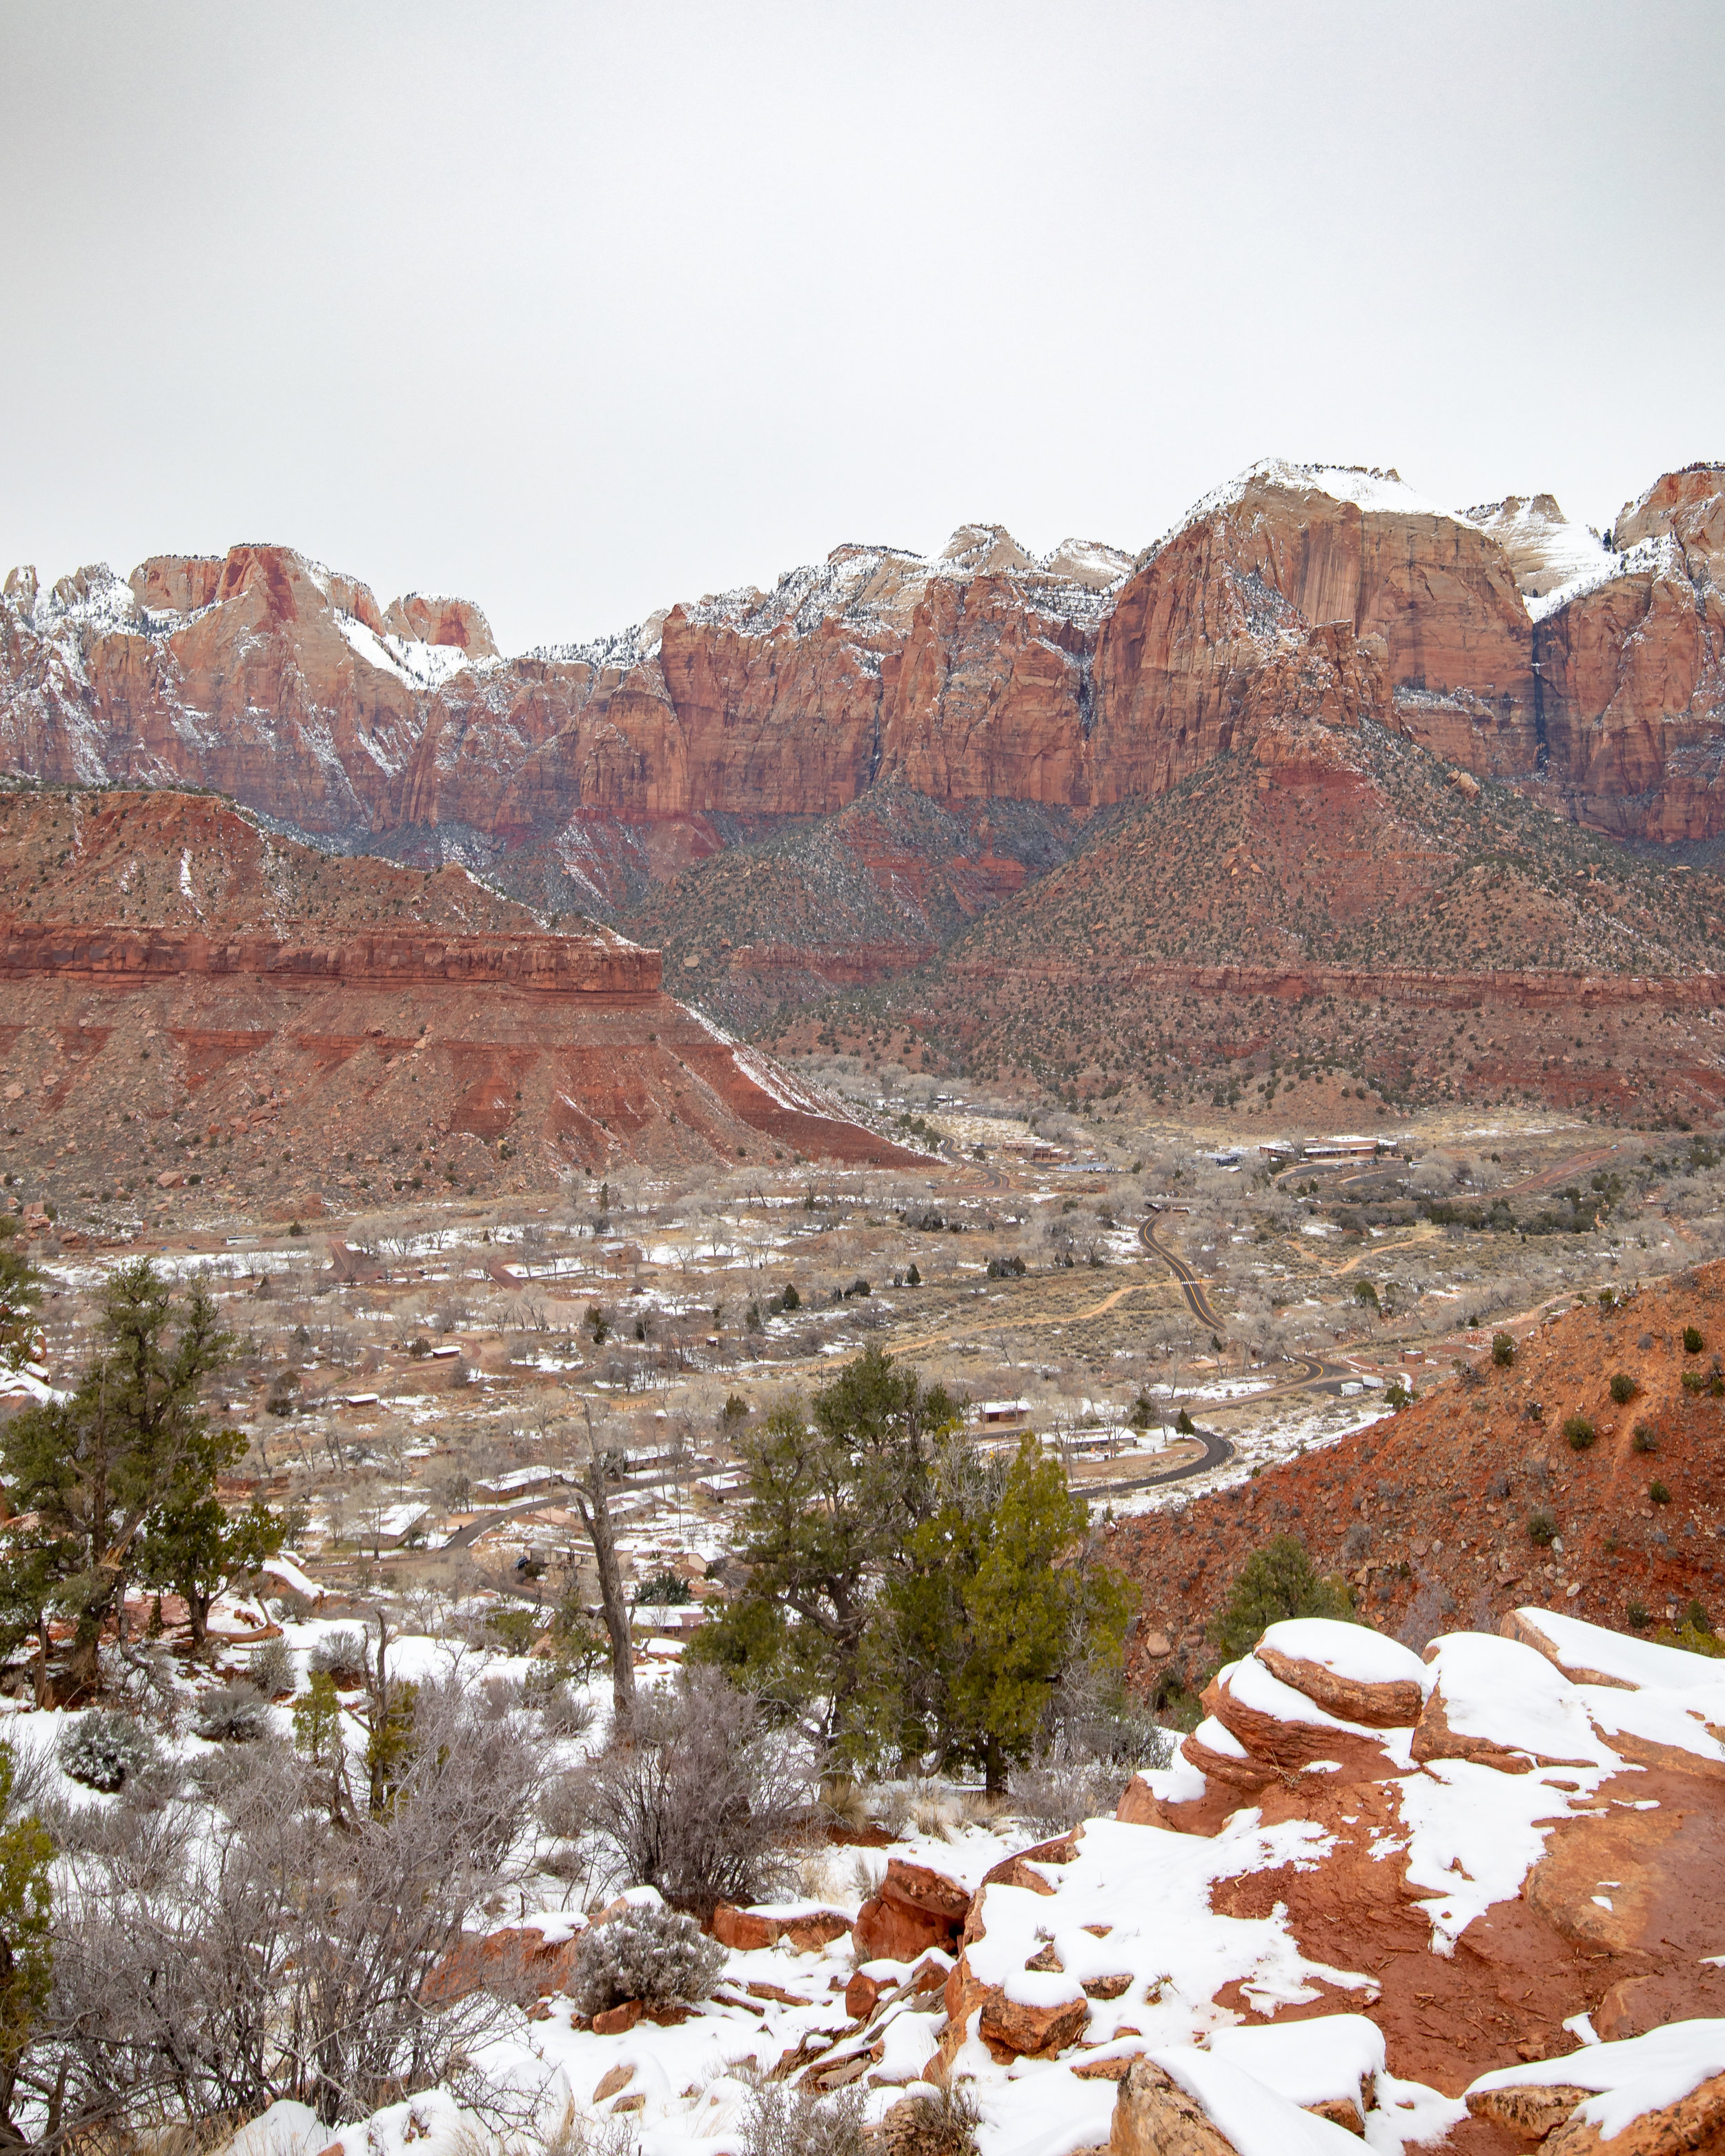 The views of the surrounding mountains from the top of the Watchman Trail